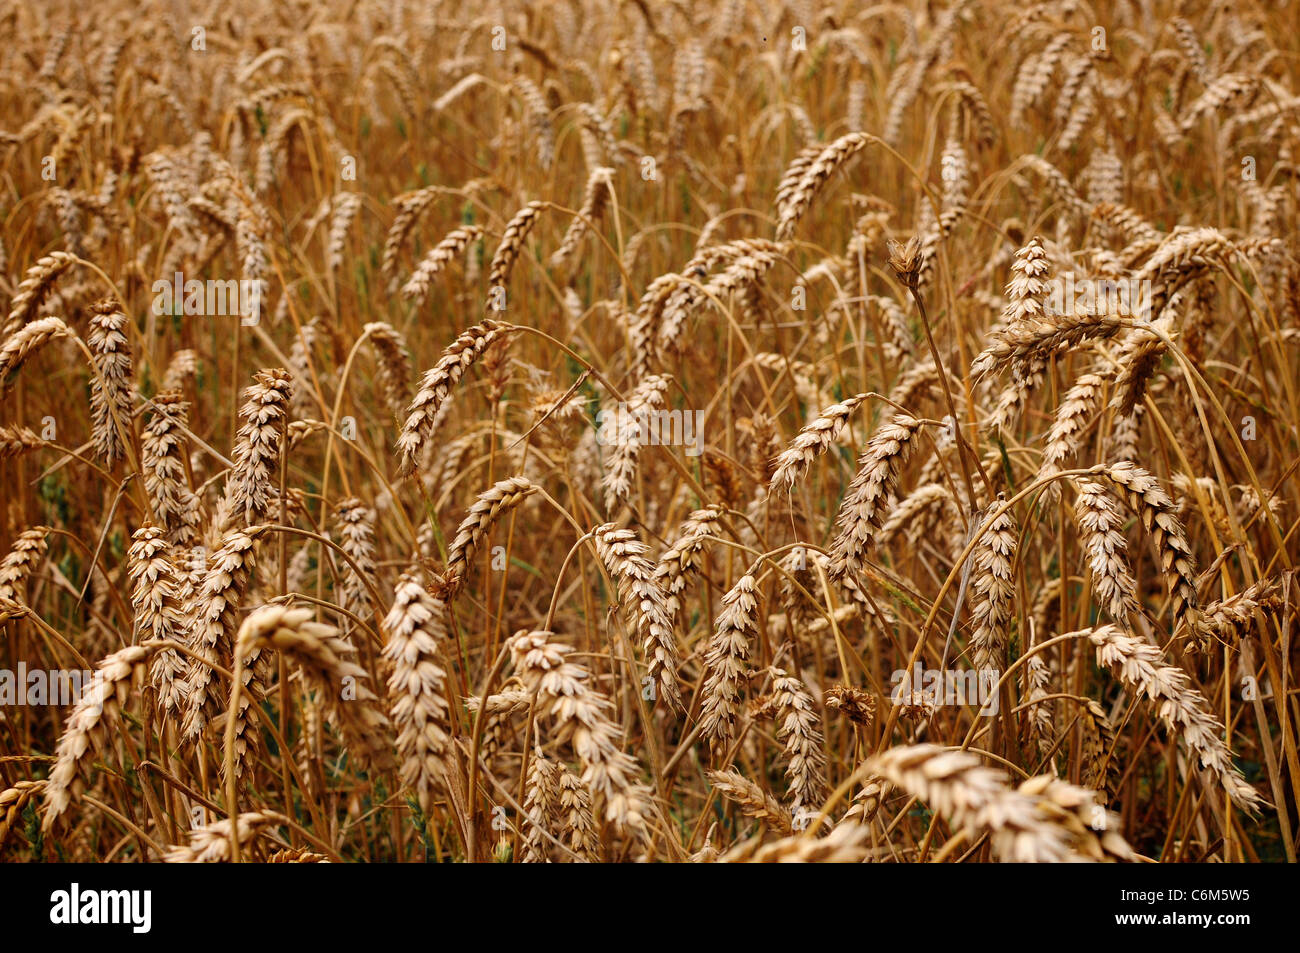 Wheat ears in a field, England - Stock Image